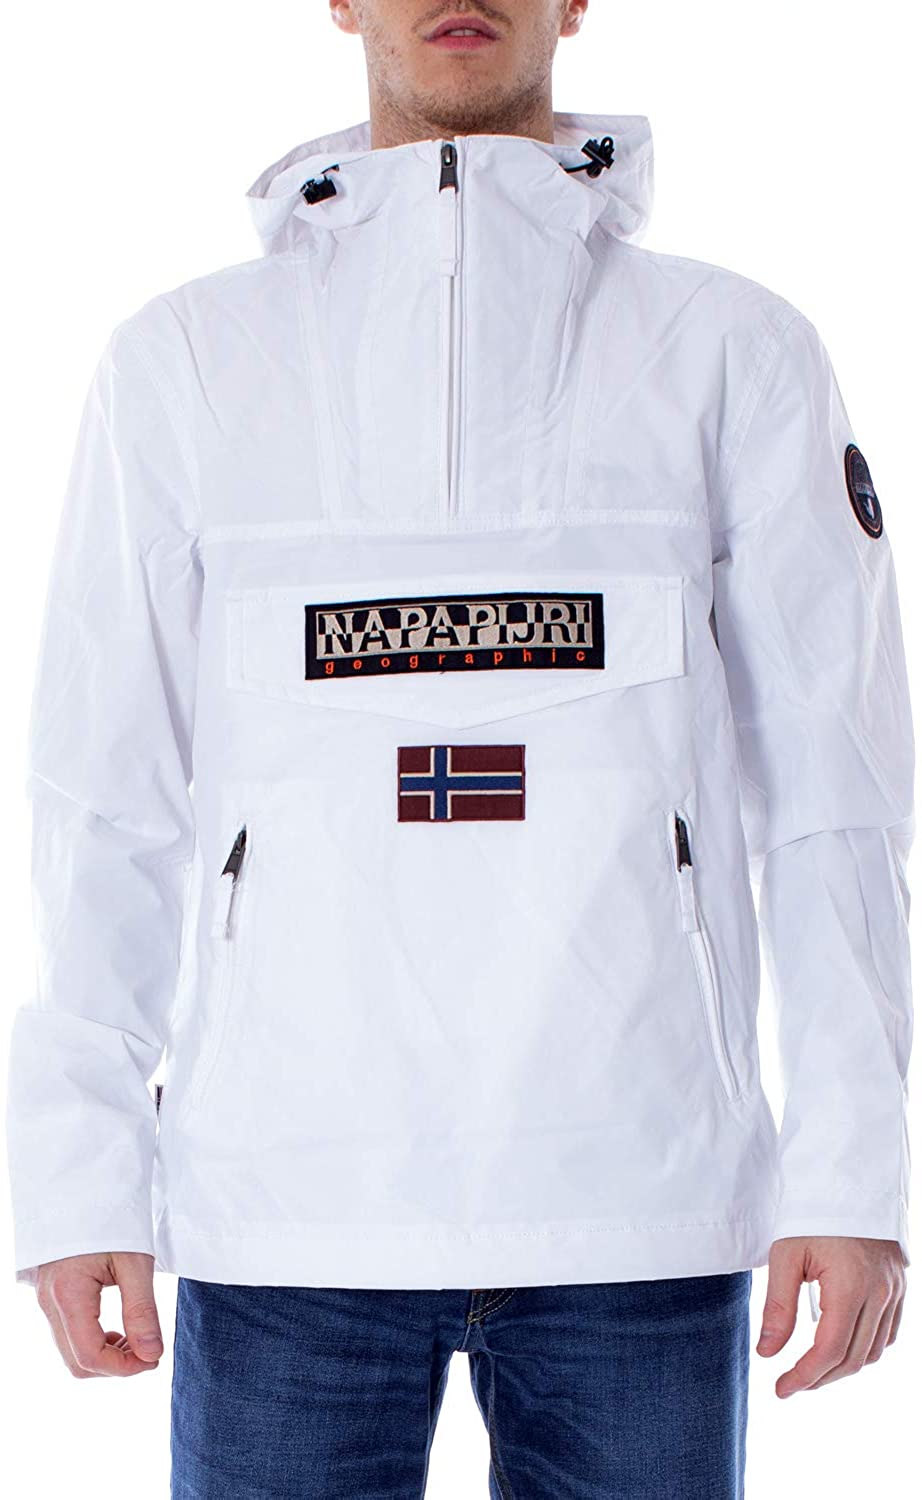 Napapijri Men's Rainforest S Pkt Bright White Jacket